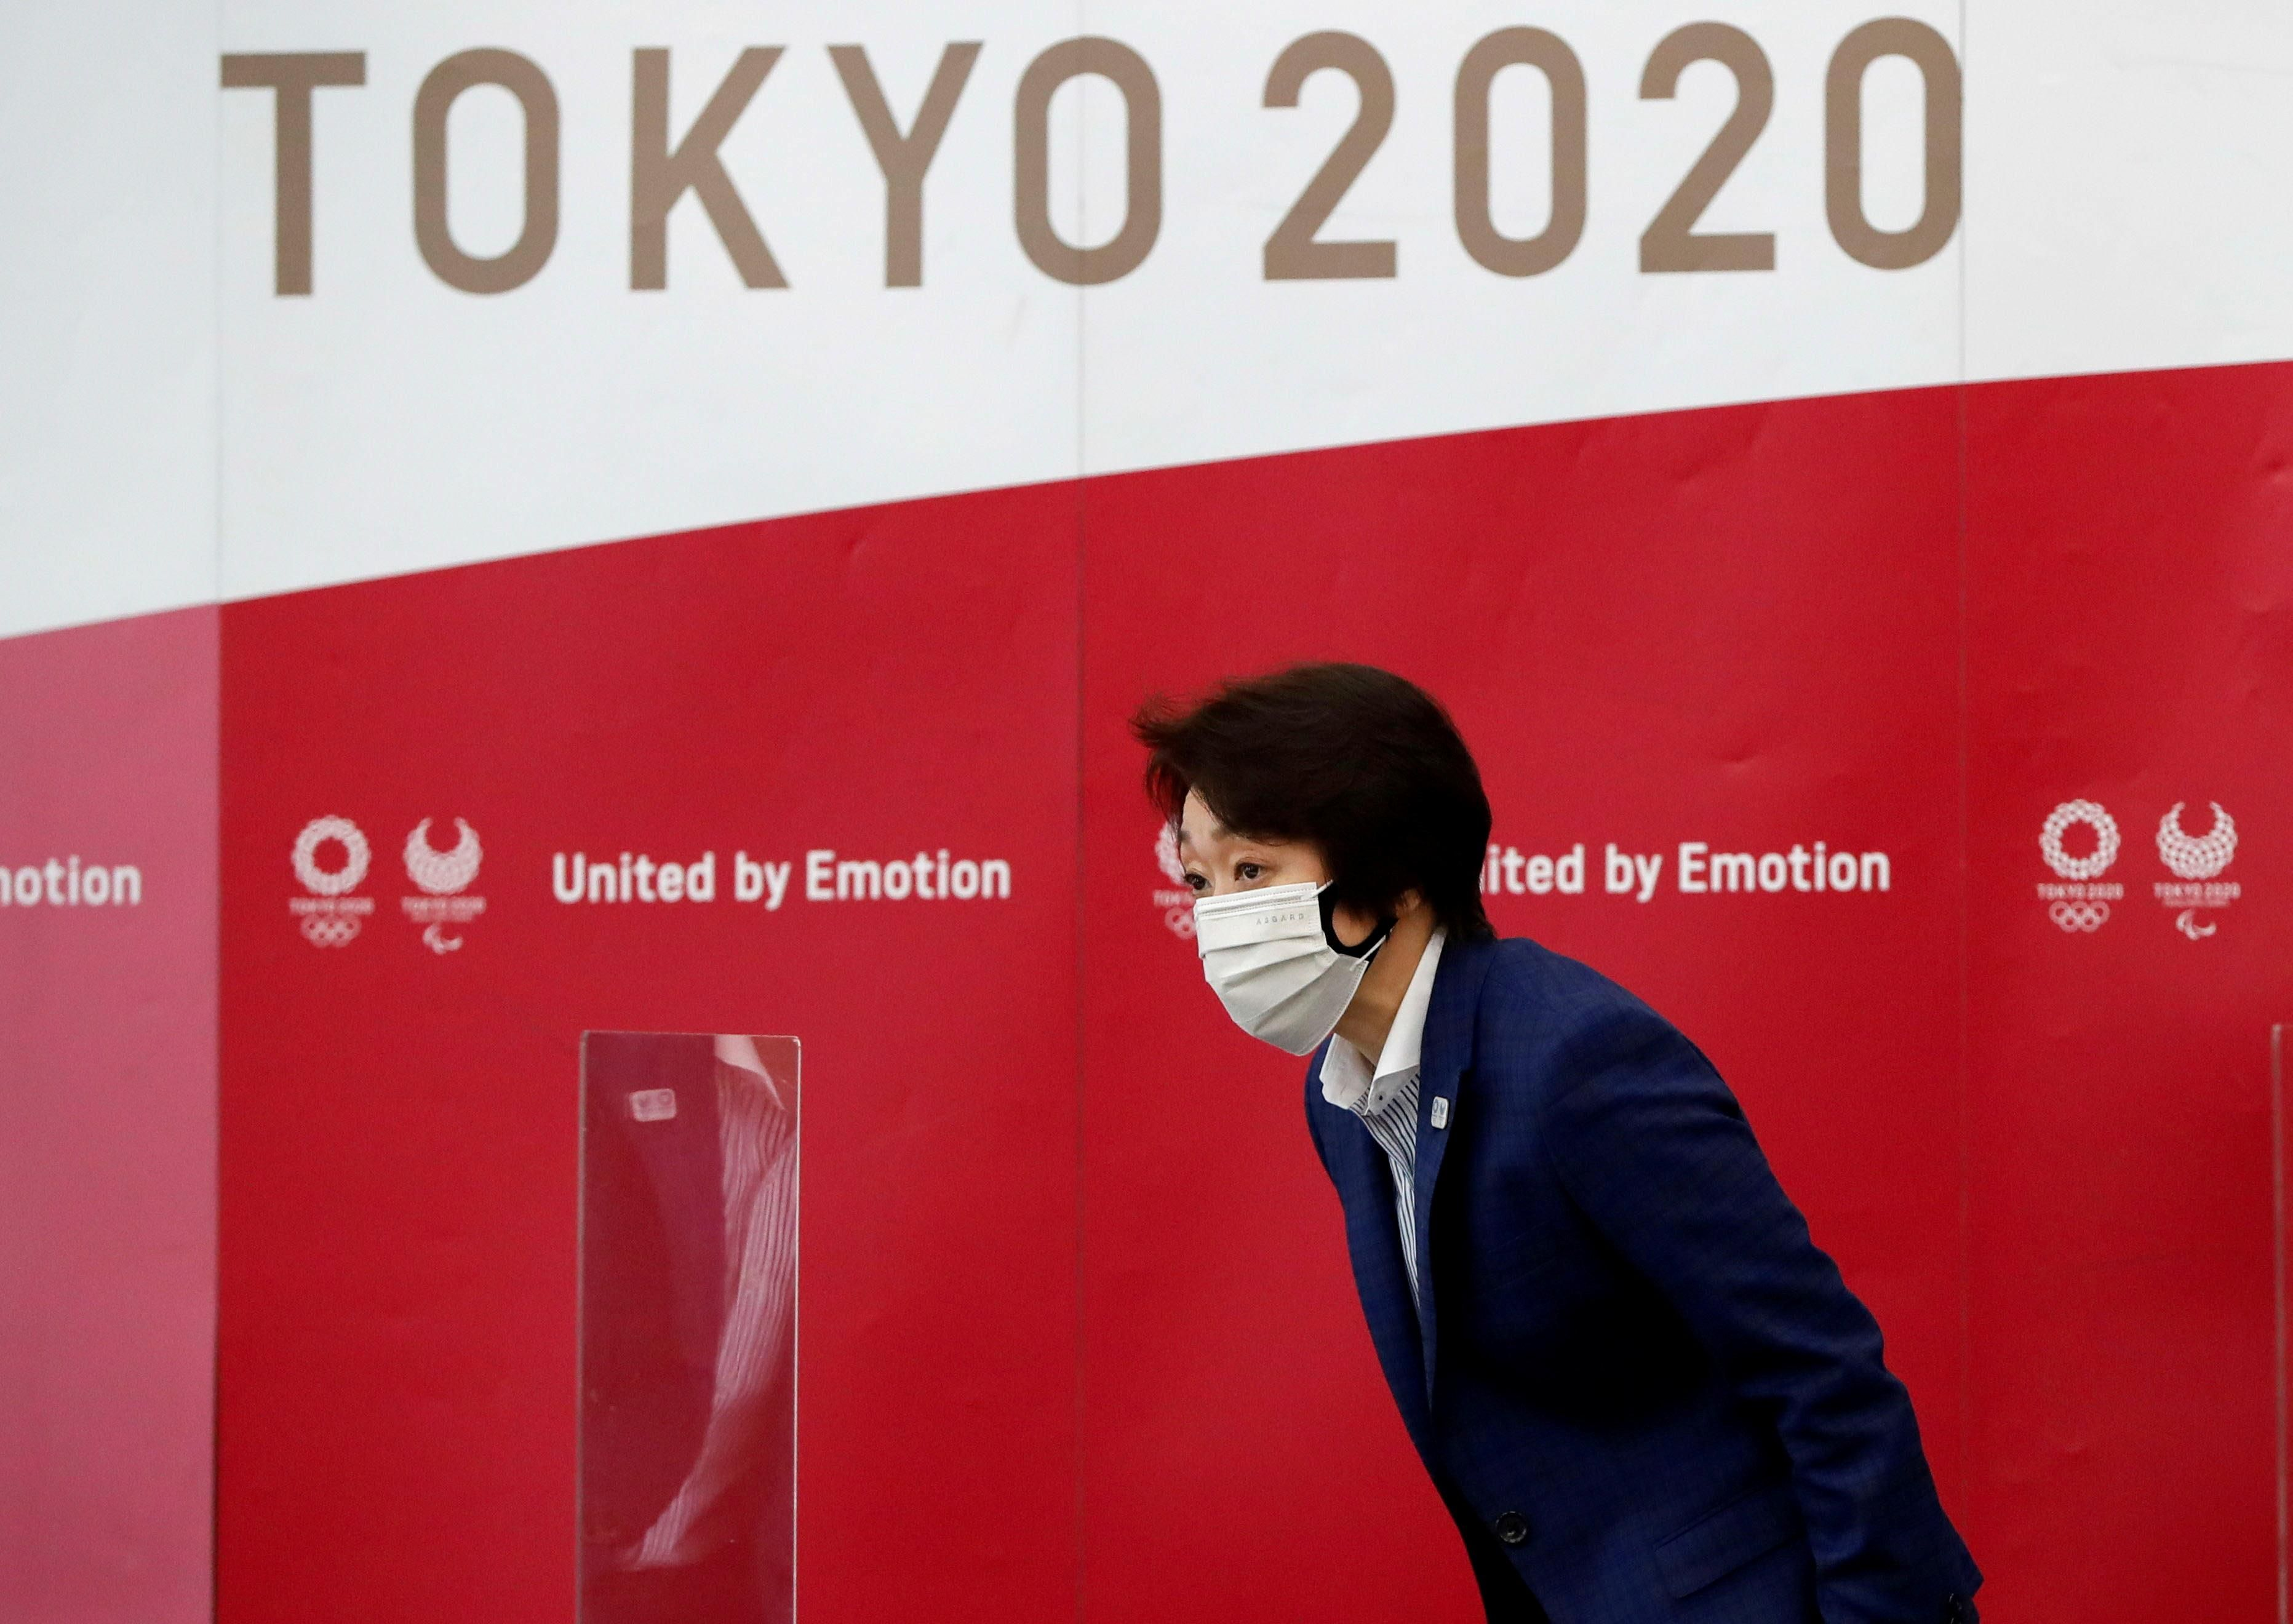 Tokyo 2020 Olympics Organising Committee President Seiko Hashimoto bows upon her arrival at the fourth roundtable meeting with medical experts to discuss on coronavirus disease (COVID-19) countermeasures, in Tokyo, Japan June 18, 2021.